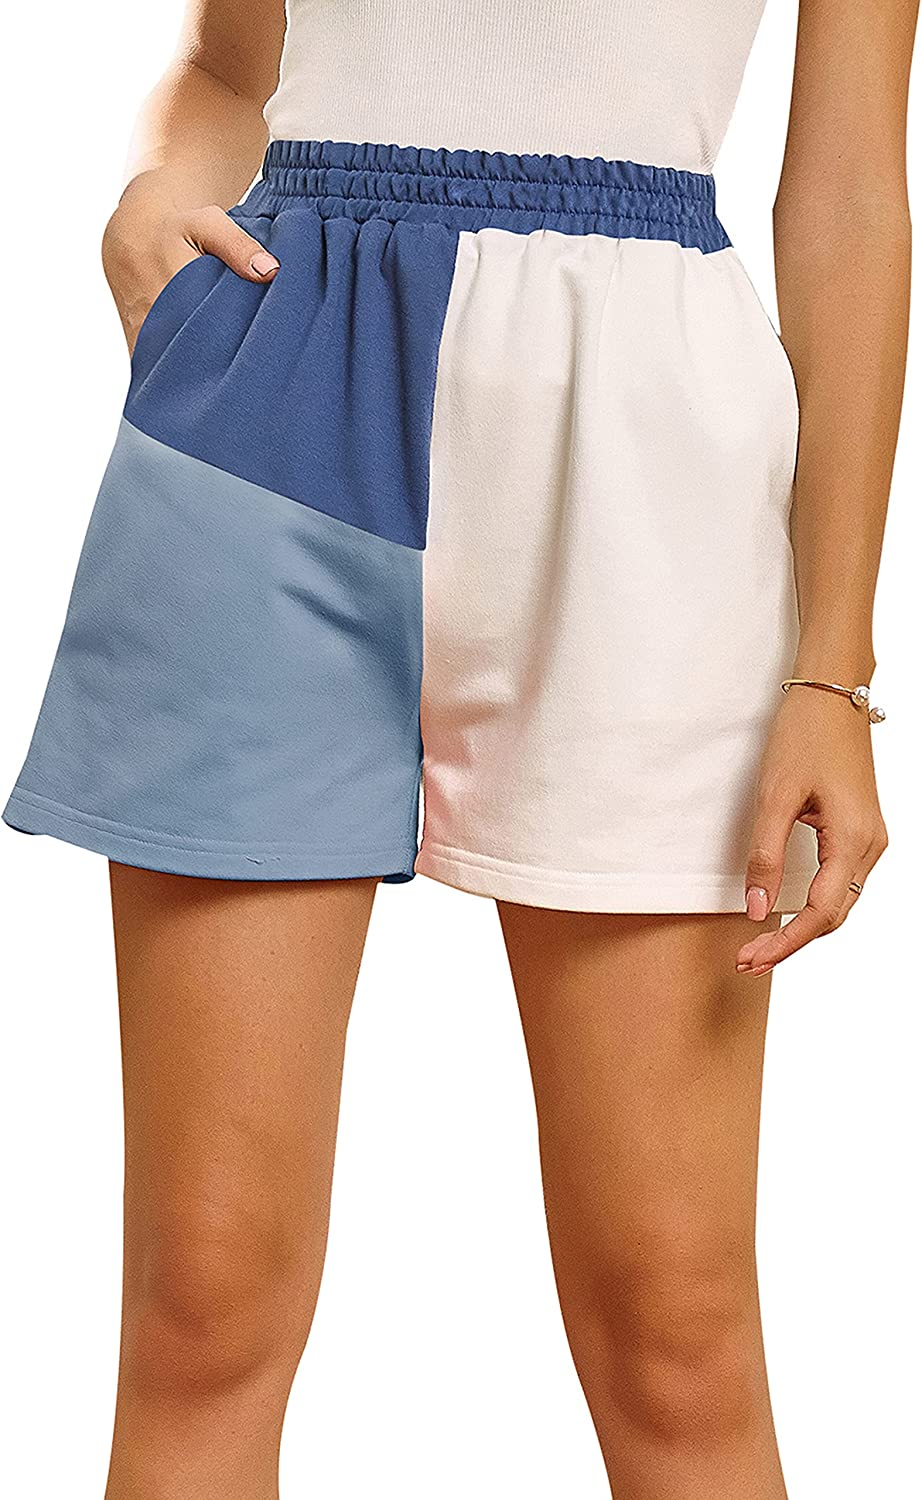 Uaneo Womens Color Block Elastic High Waist Casual Summer Shorts with Pockets (Blue-S)